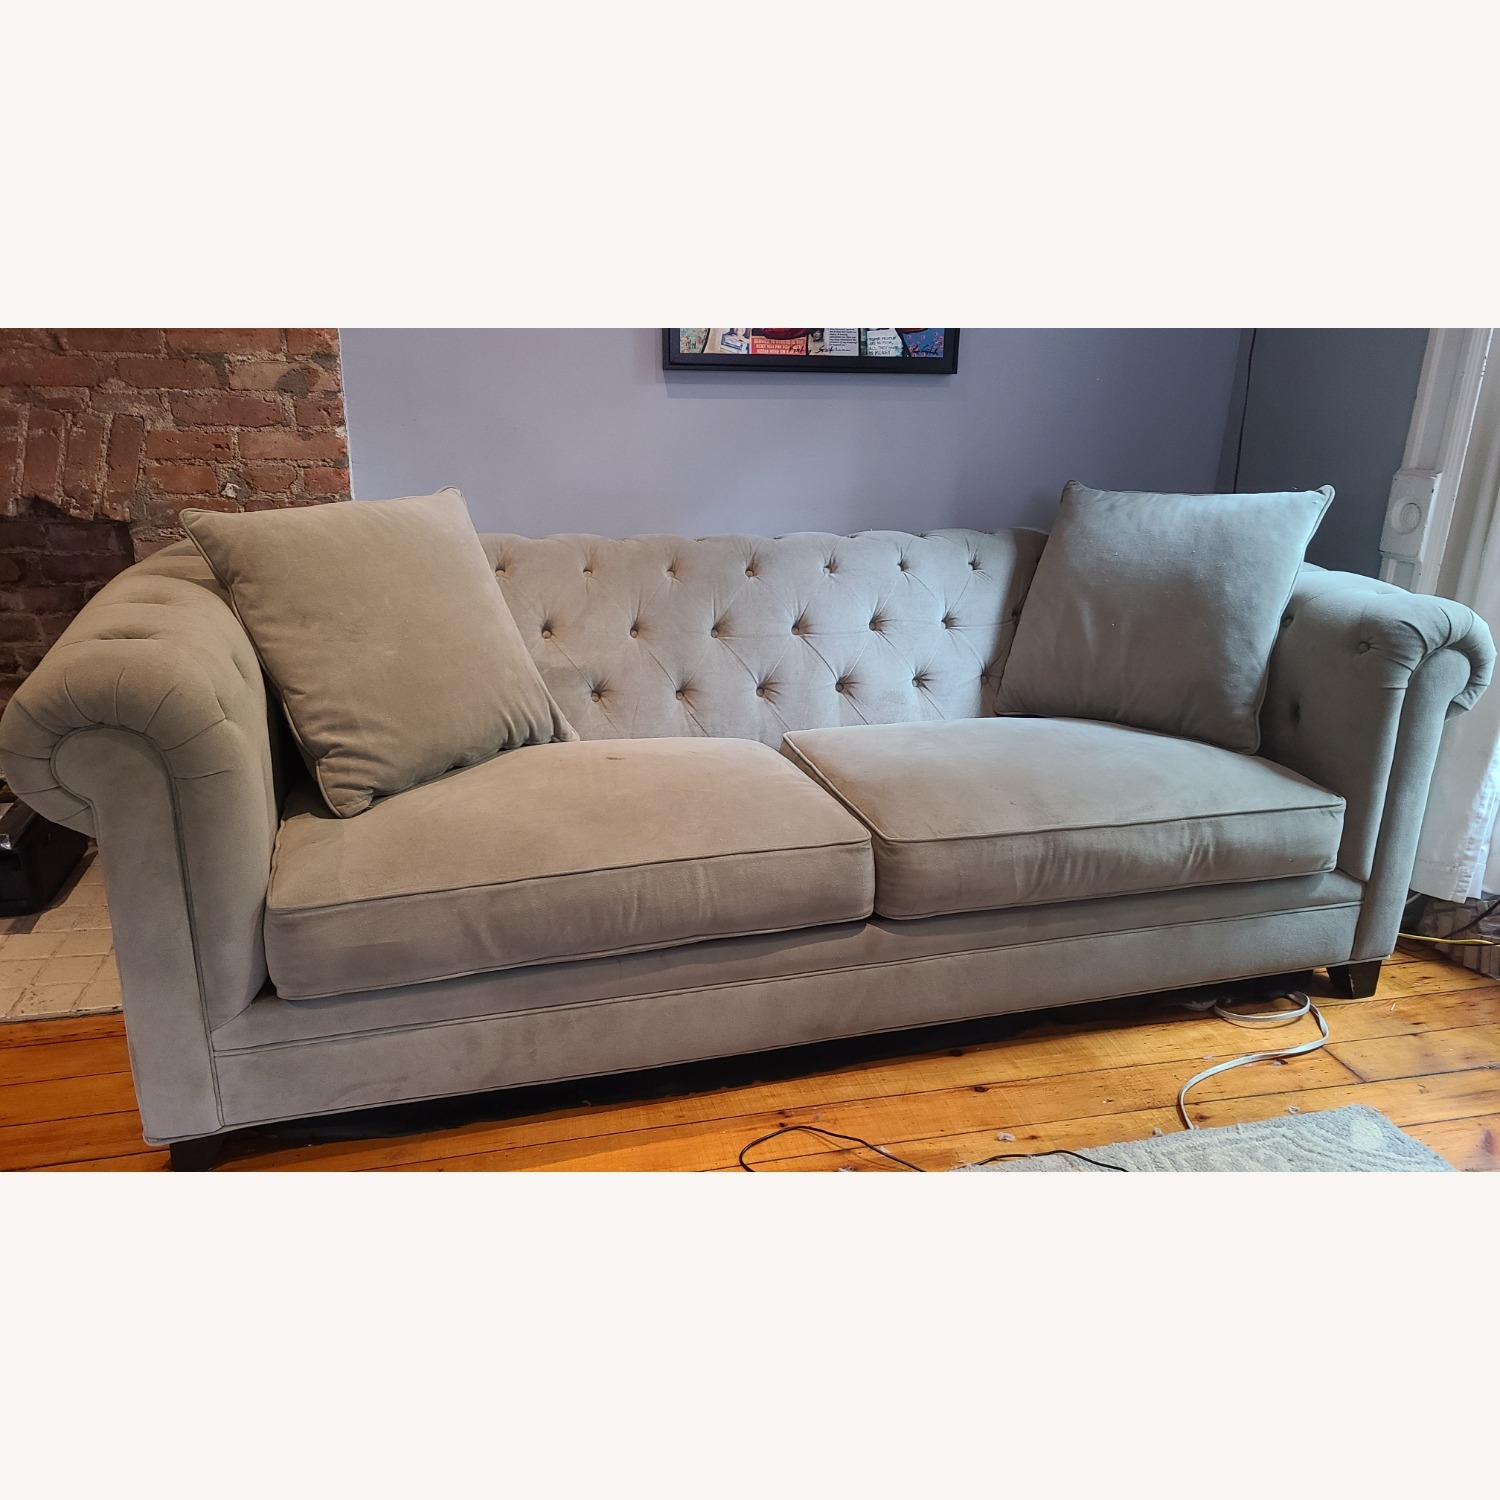 Martha Stewart Gray Saybridge 3 Seater Sofa - image-1